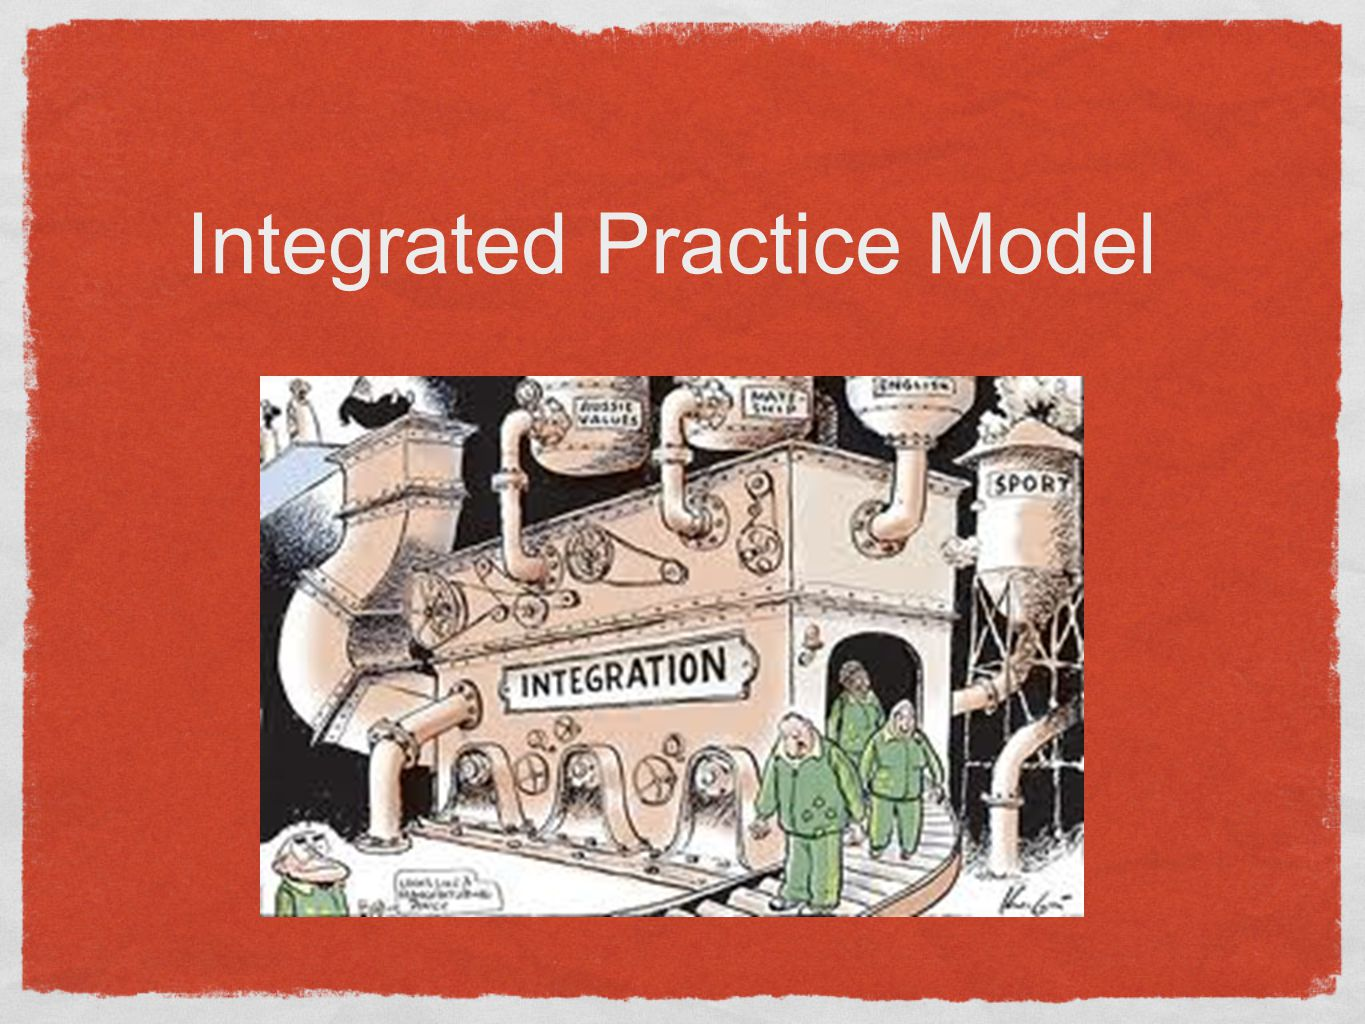 Integrated Practice Model